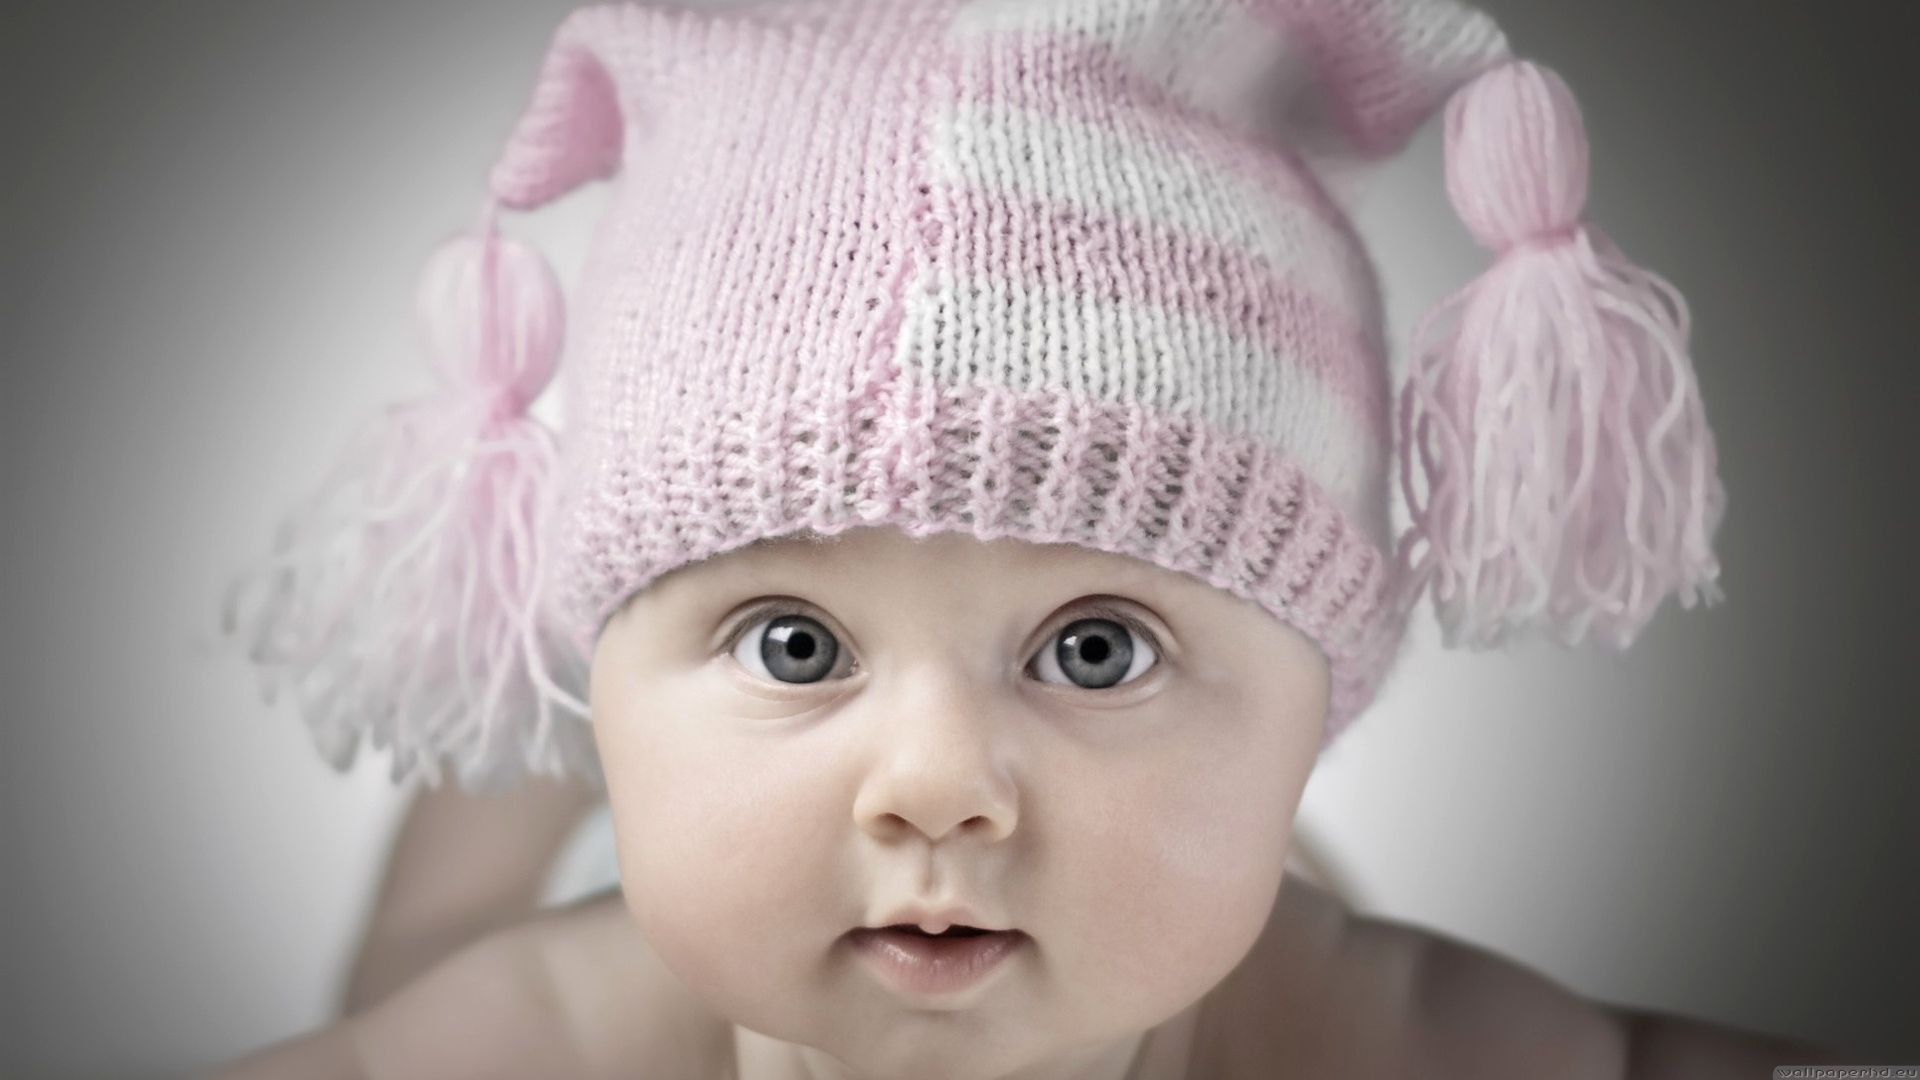 Adorable Baby Photos In Hd Cute Wallpapers Download Free Cute